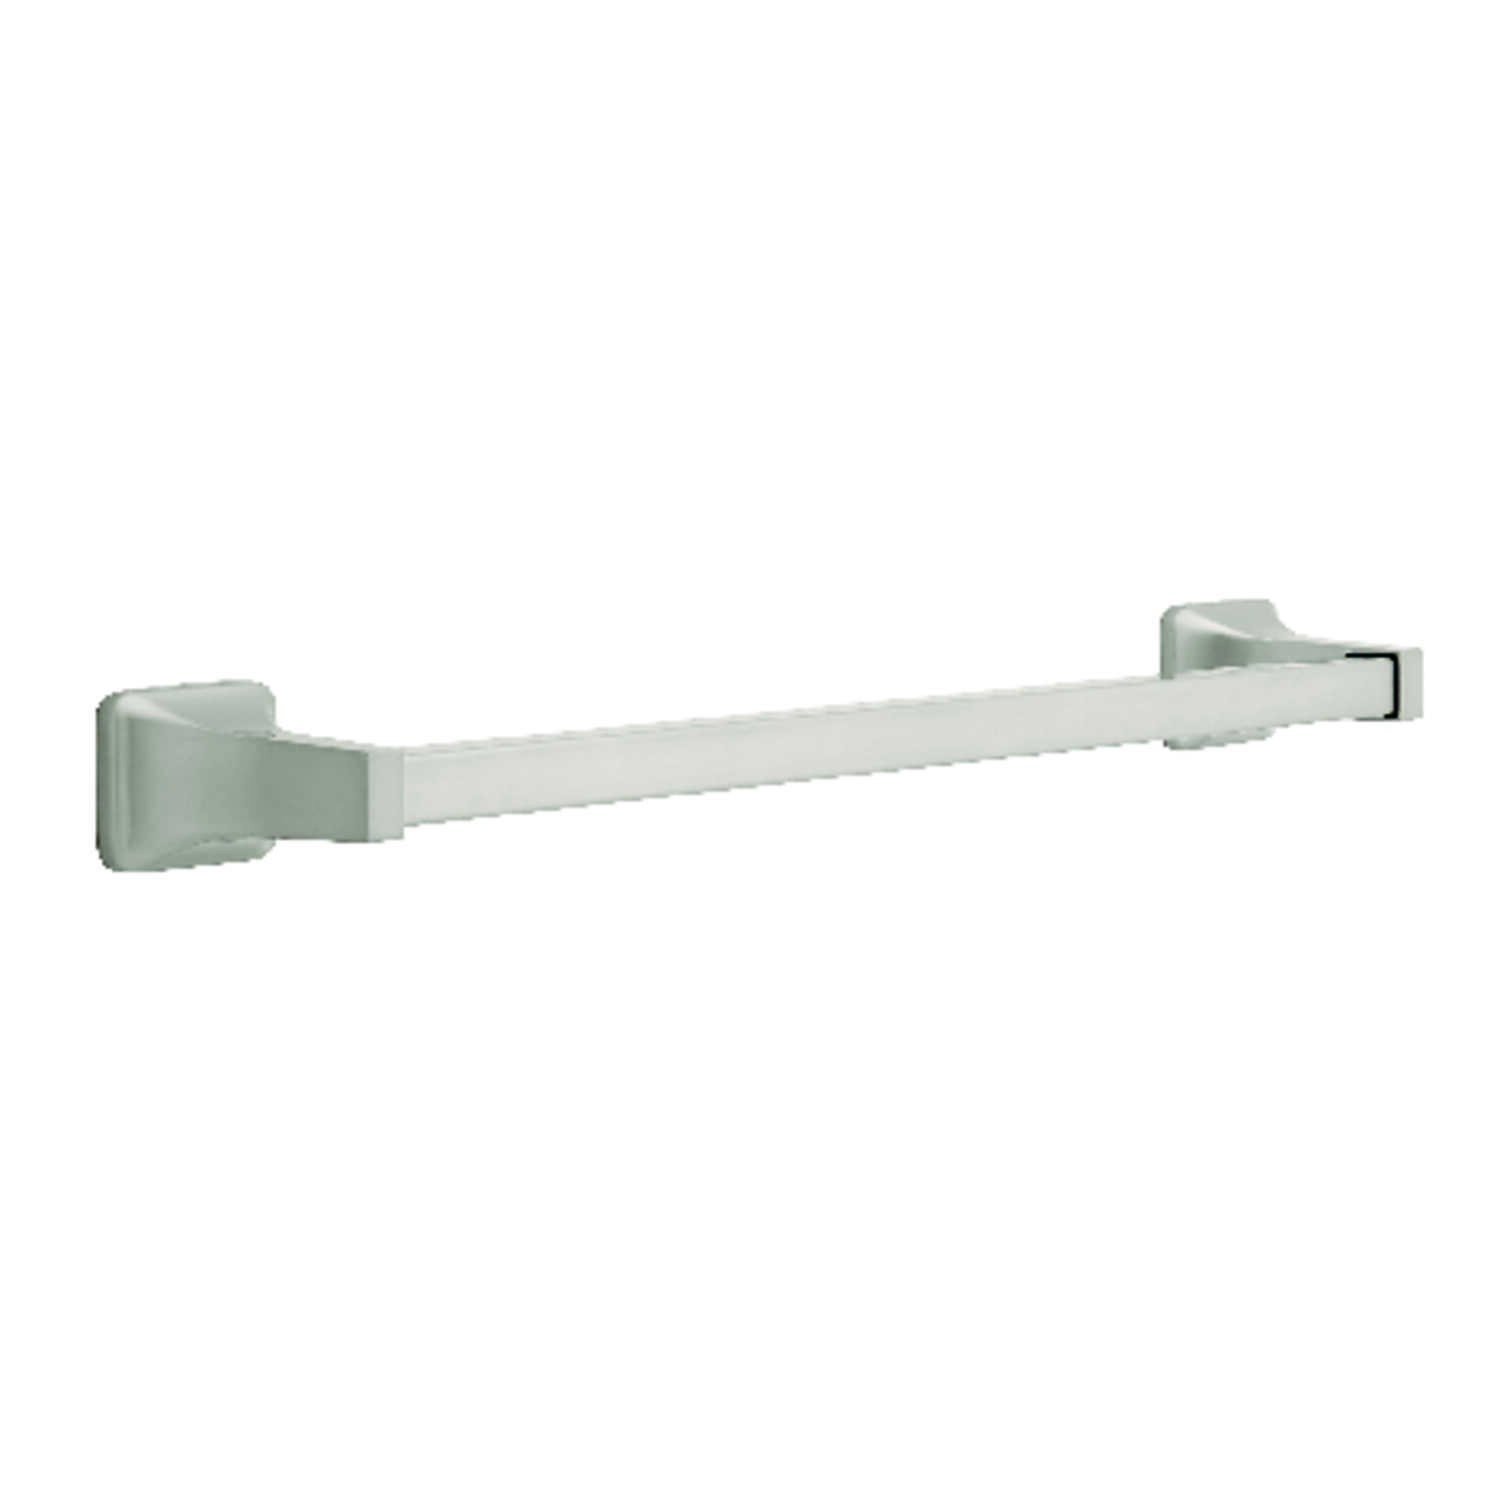 Franklin Brass  Futura  Satin Nickel  Towel Bar  18 in. L Die Cast Zinc